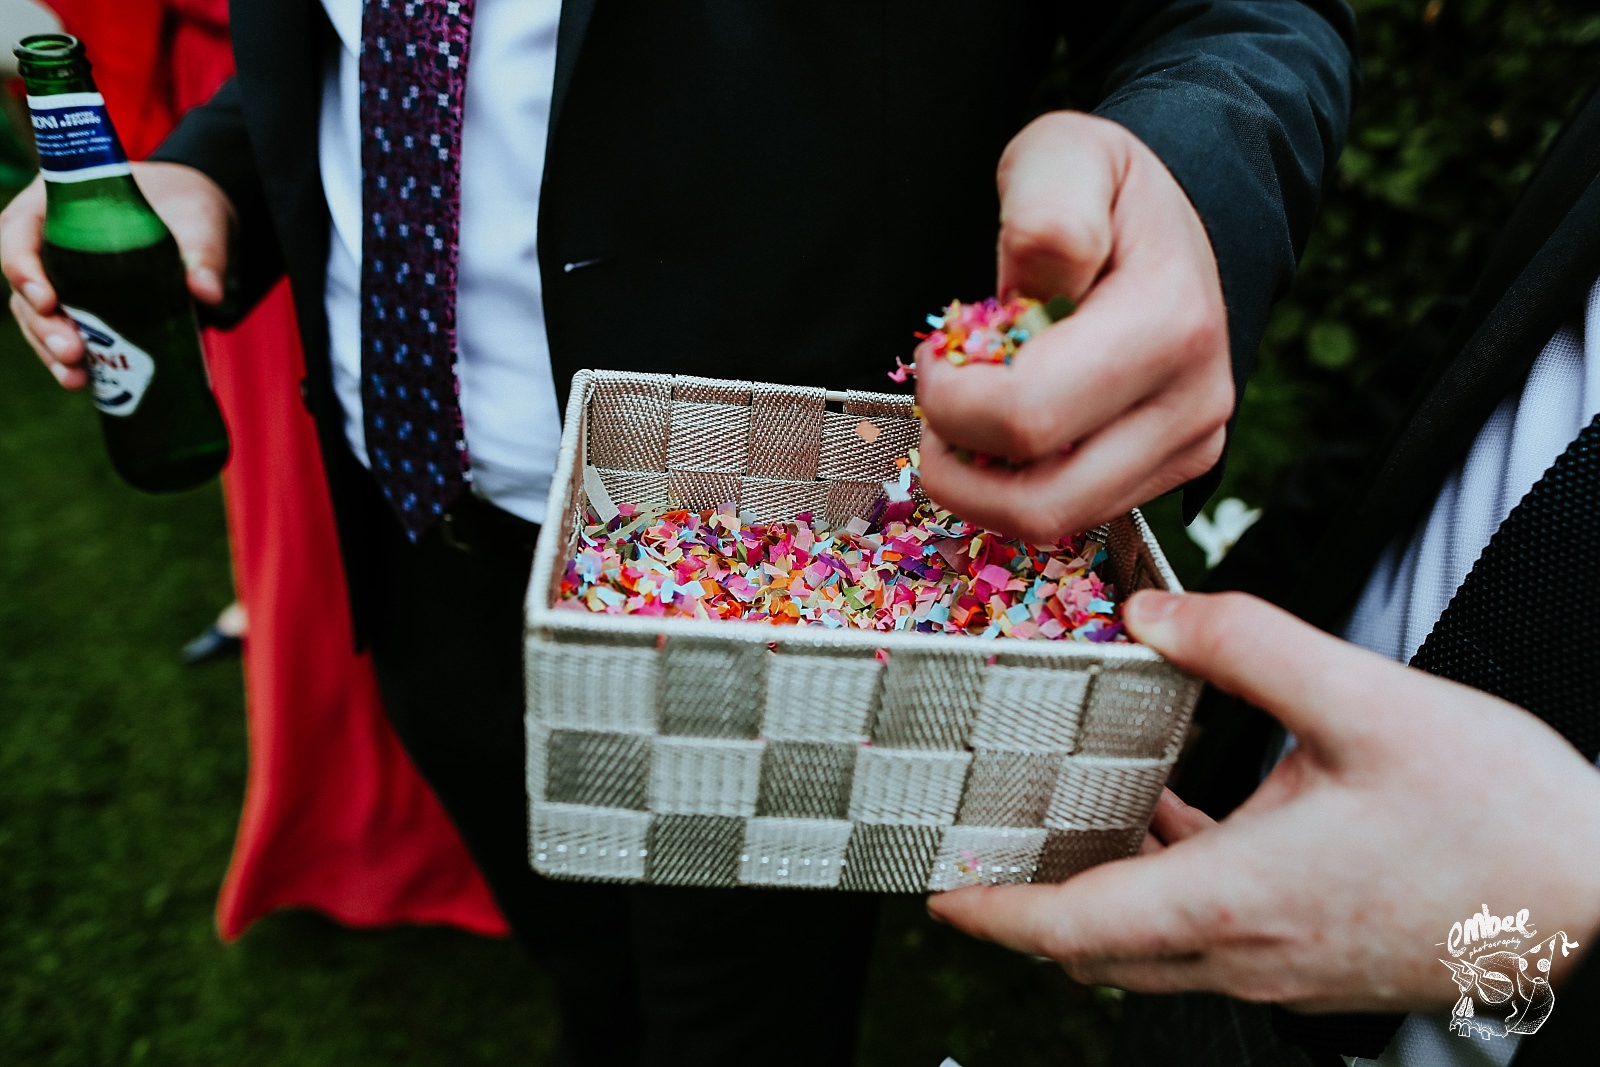 grabbing a handful of colourful confetti